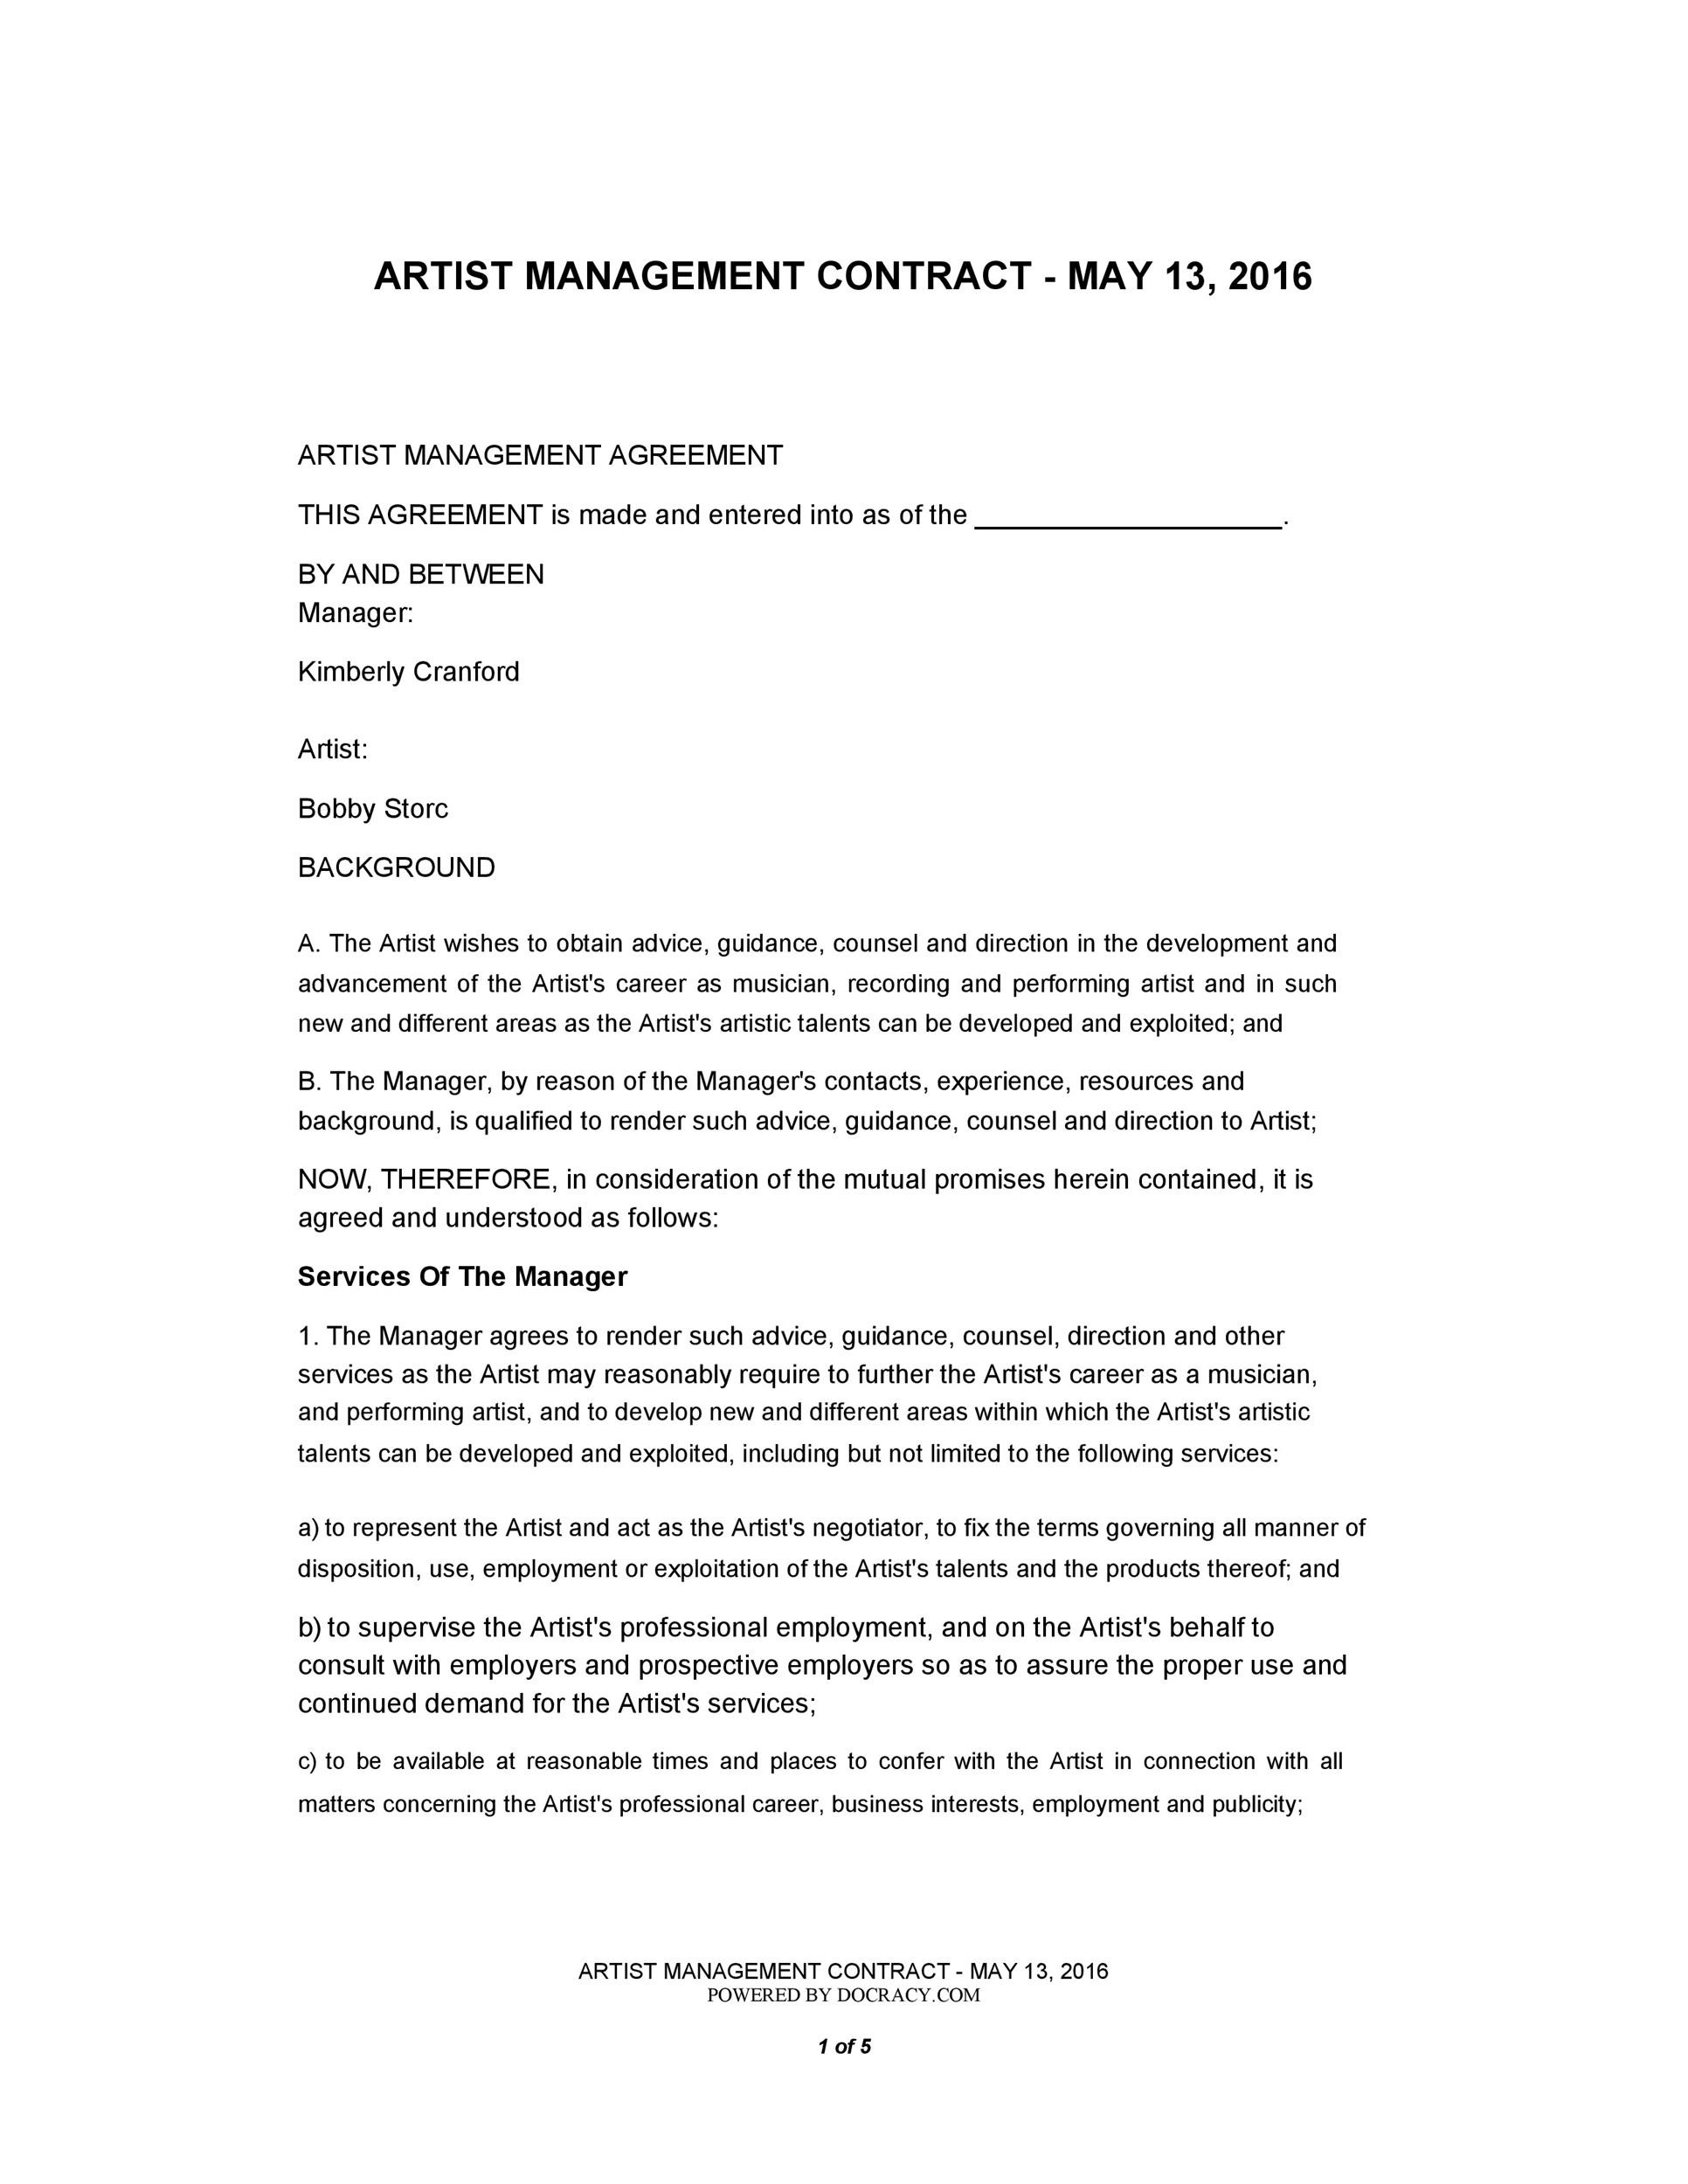 Free artist management contract 26